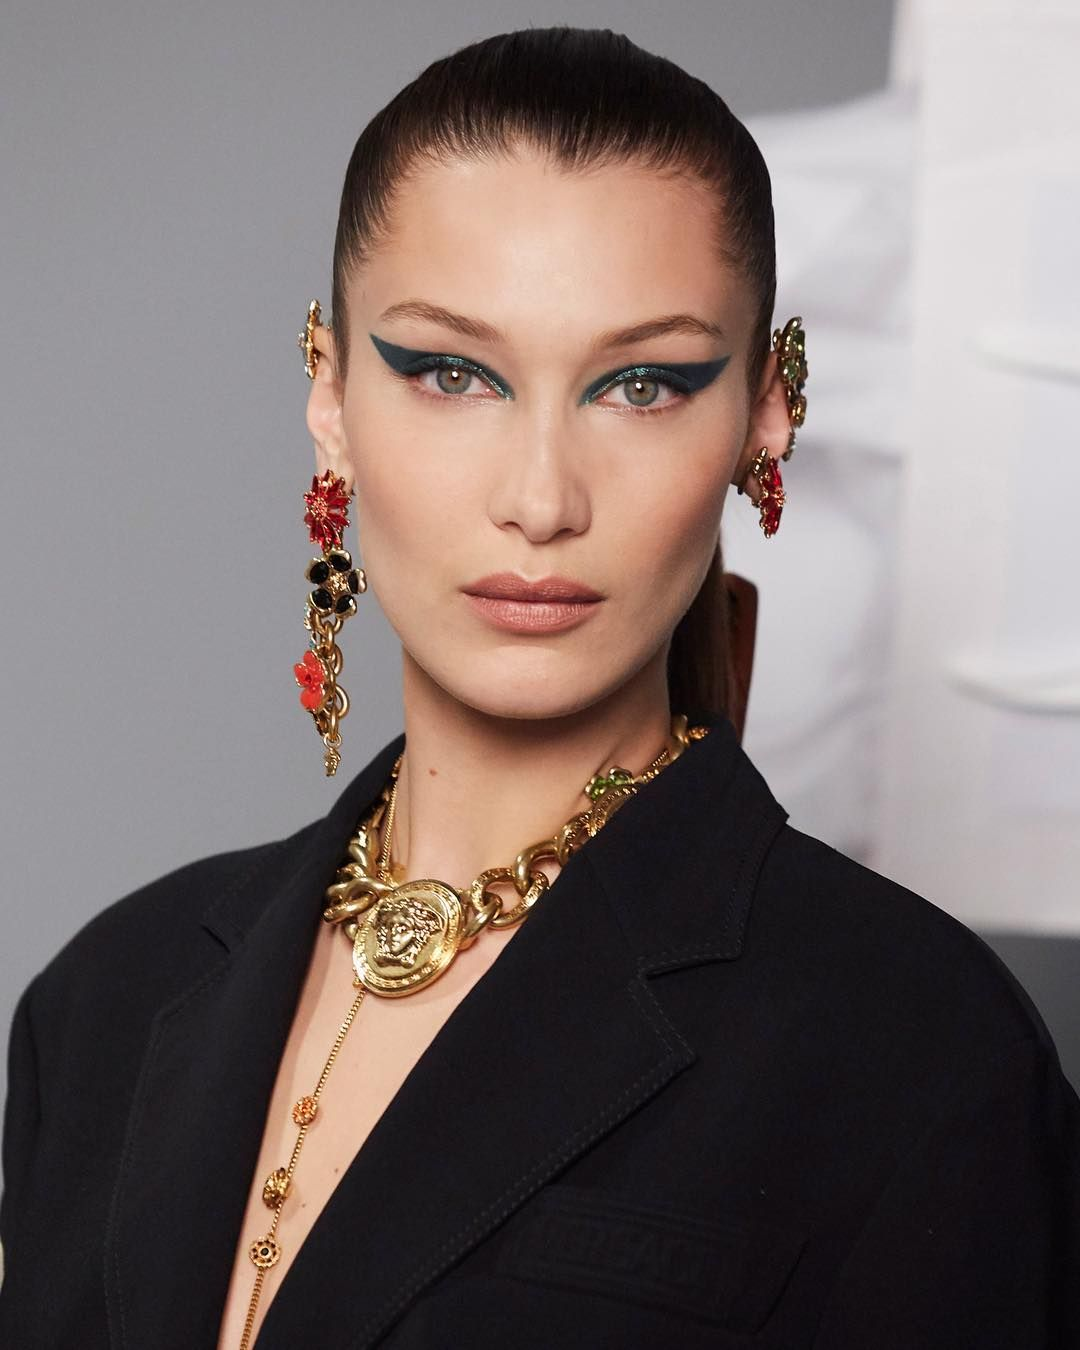 Versace On Instagram Bellahadid Adorned By The Medusa Flowers And Chains Discover Versacess19 Fashion Jewelry Now At Th Bella Hadid Hadid Fashion Makeup